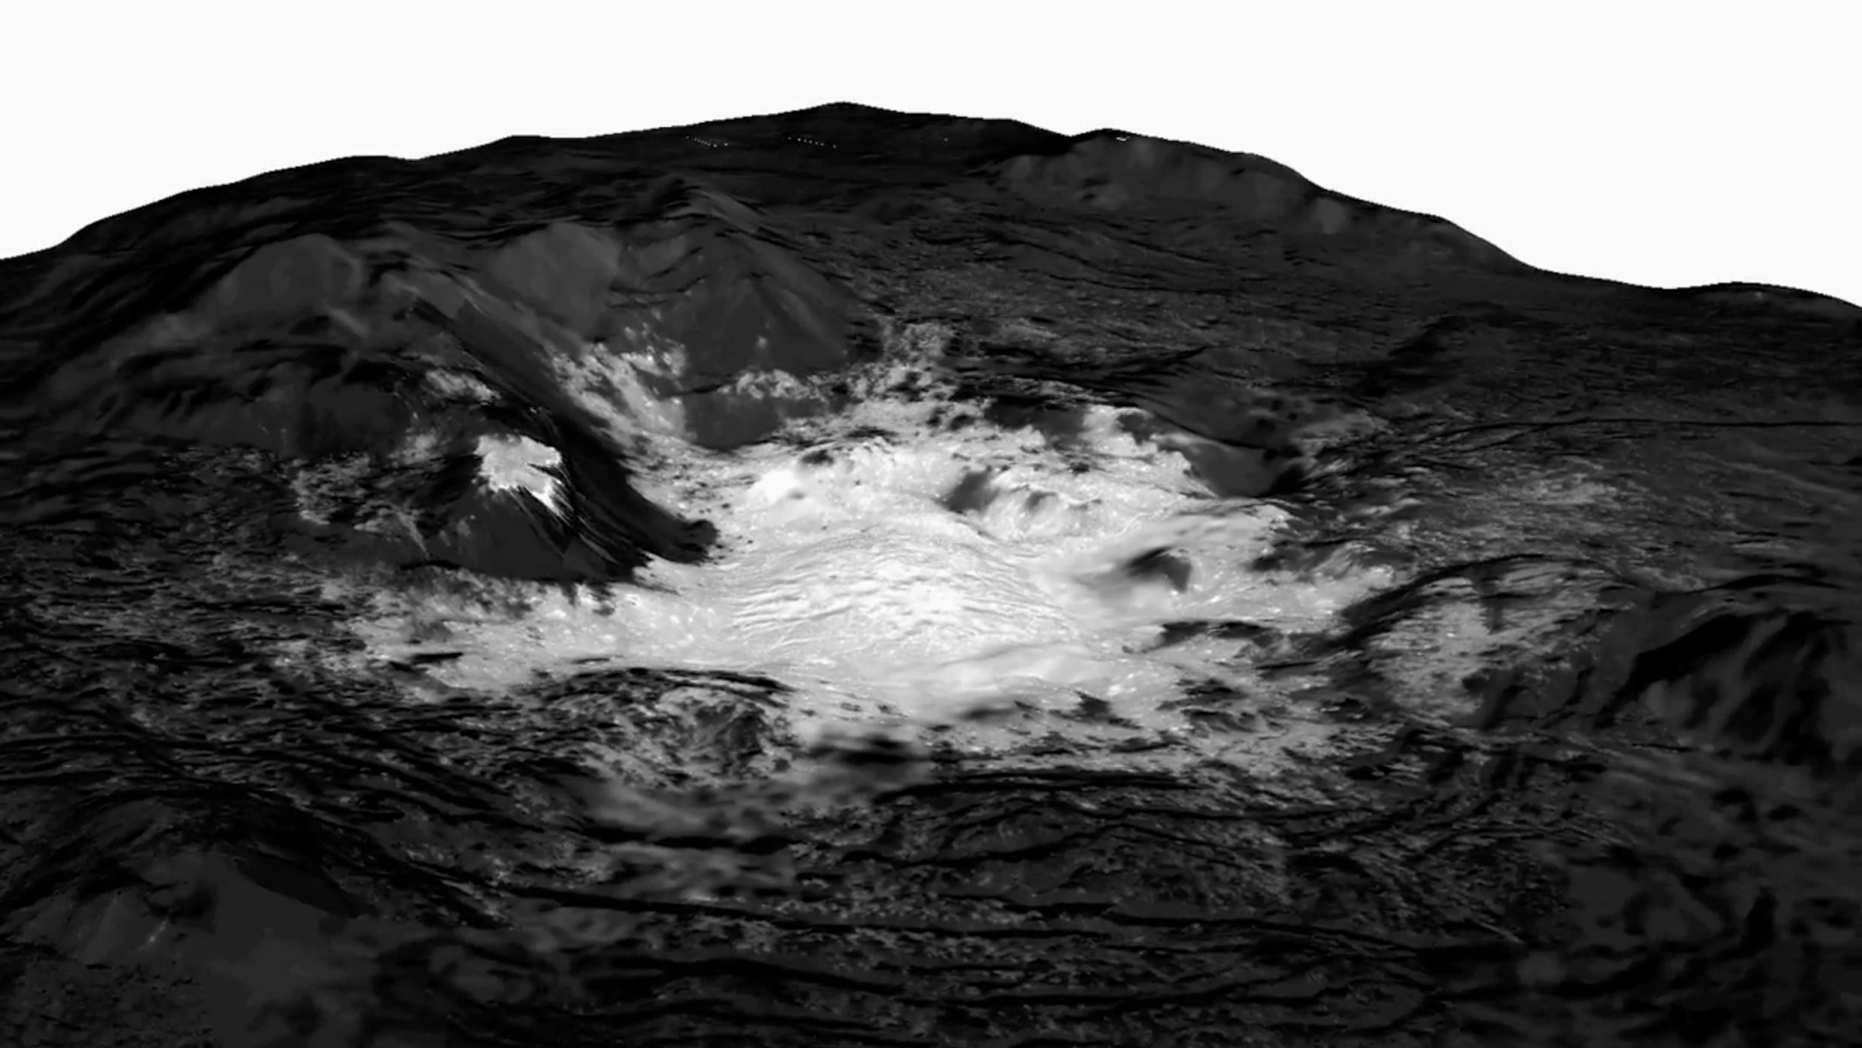 This mosaic of a bright spot on the dwarf planet Ceres known as Cerealia Facula combines images captured by NASA's Dawn spacecraft from altitudes as low as 22 miles (35 kilometers) above Ceres' surface. The mosaic is overlain on a topography model based on images obtained during Dawn's low-altitude mapping orbit (240 miles, or 385 km altitude). No vertical exaggeration was applied.